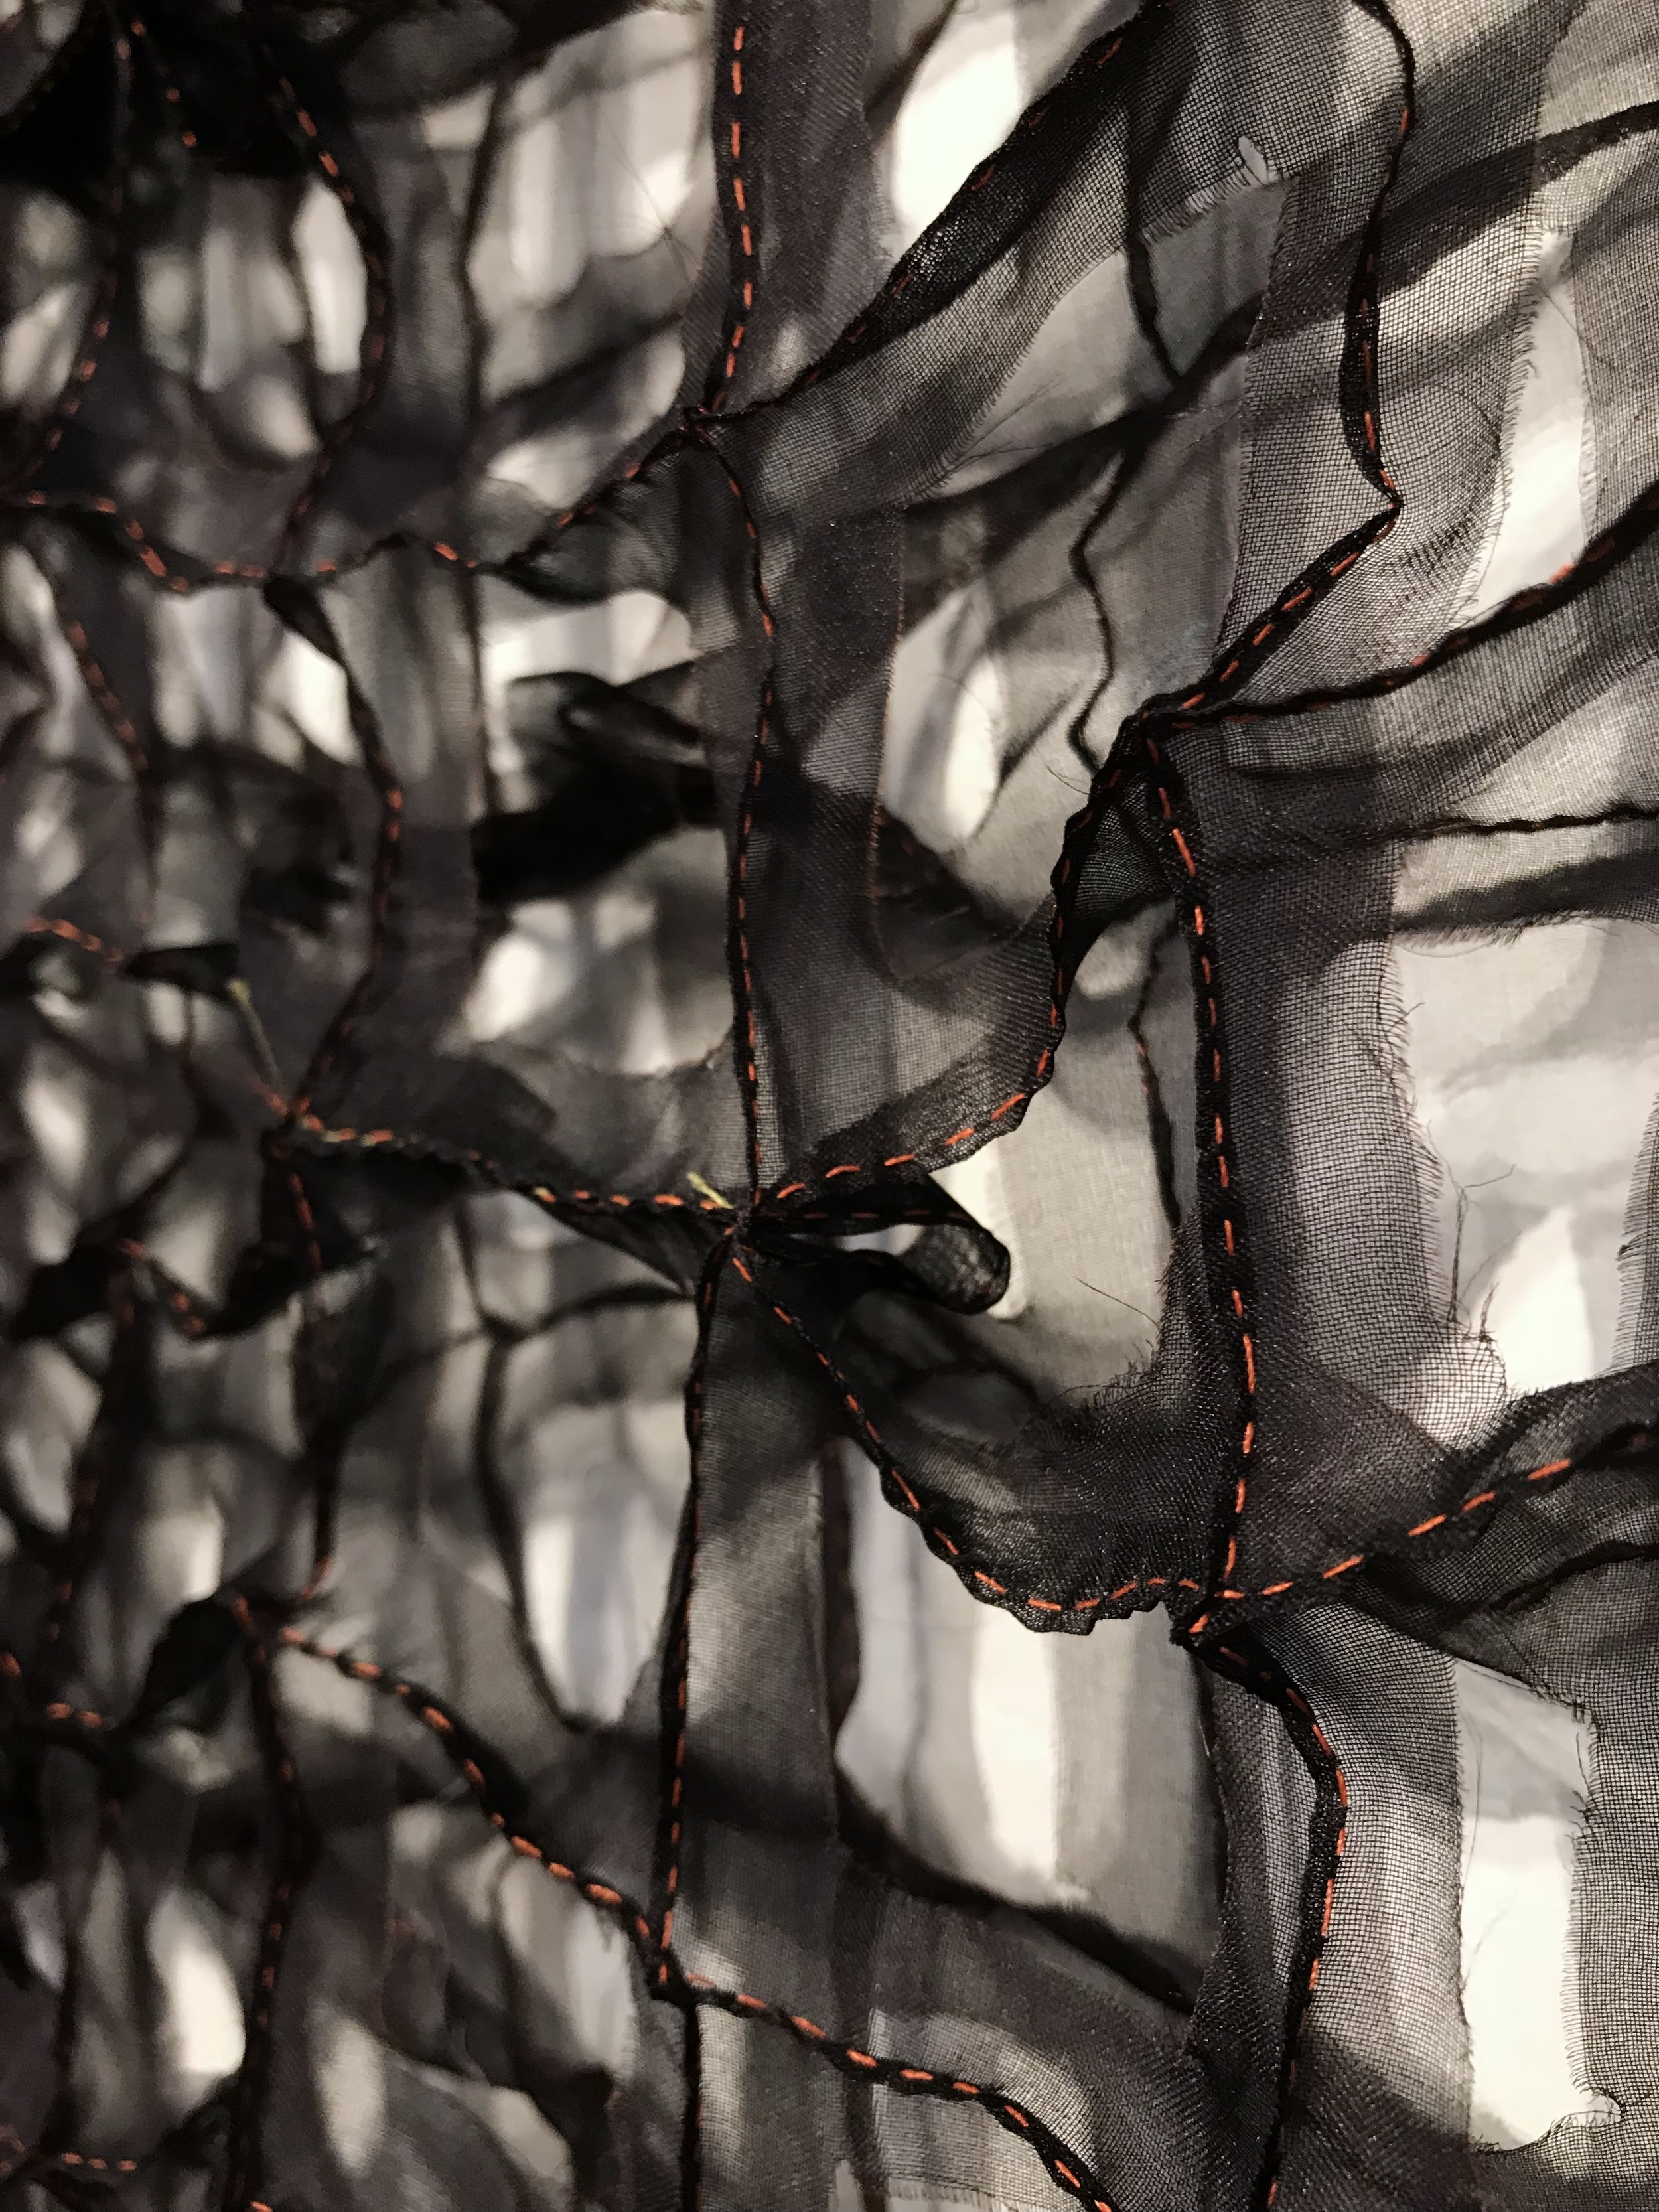 Stitched grid, detail   silk organza, thread  2018